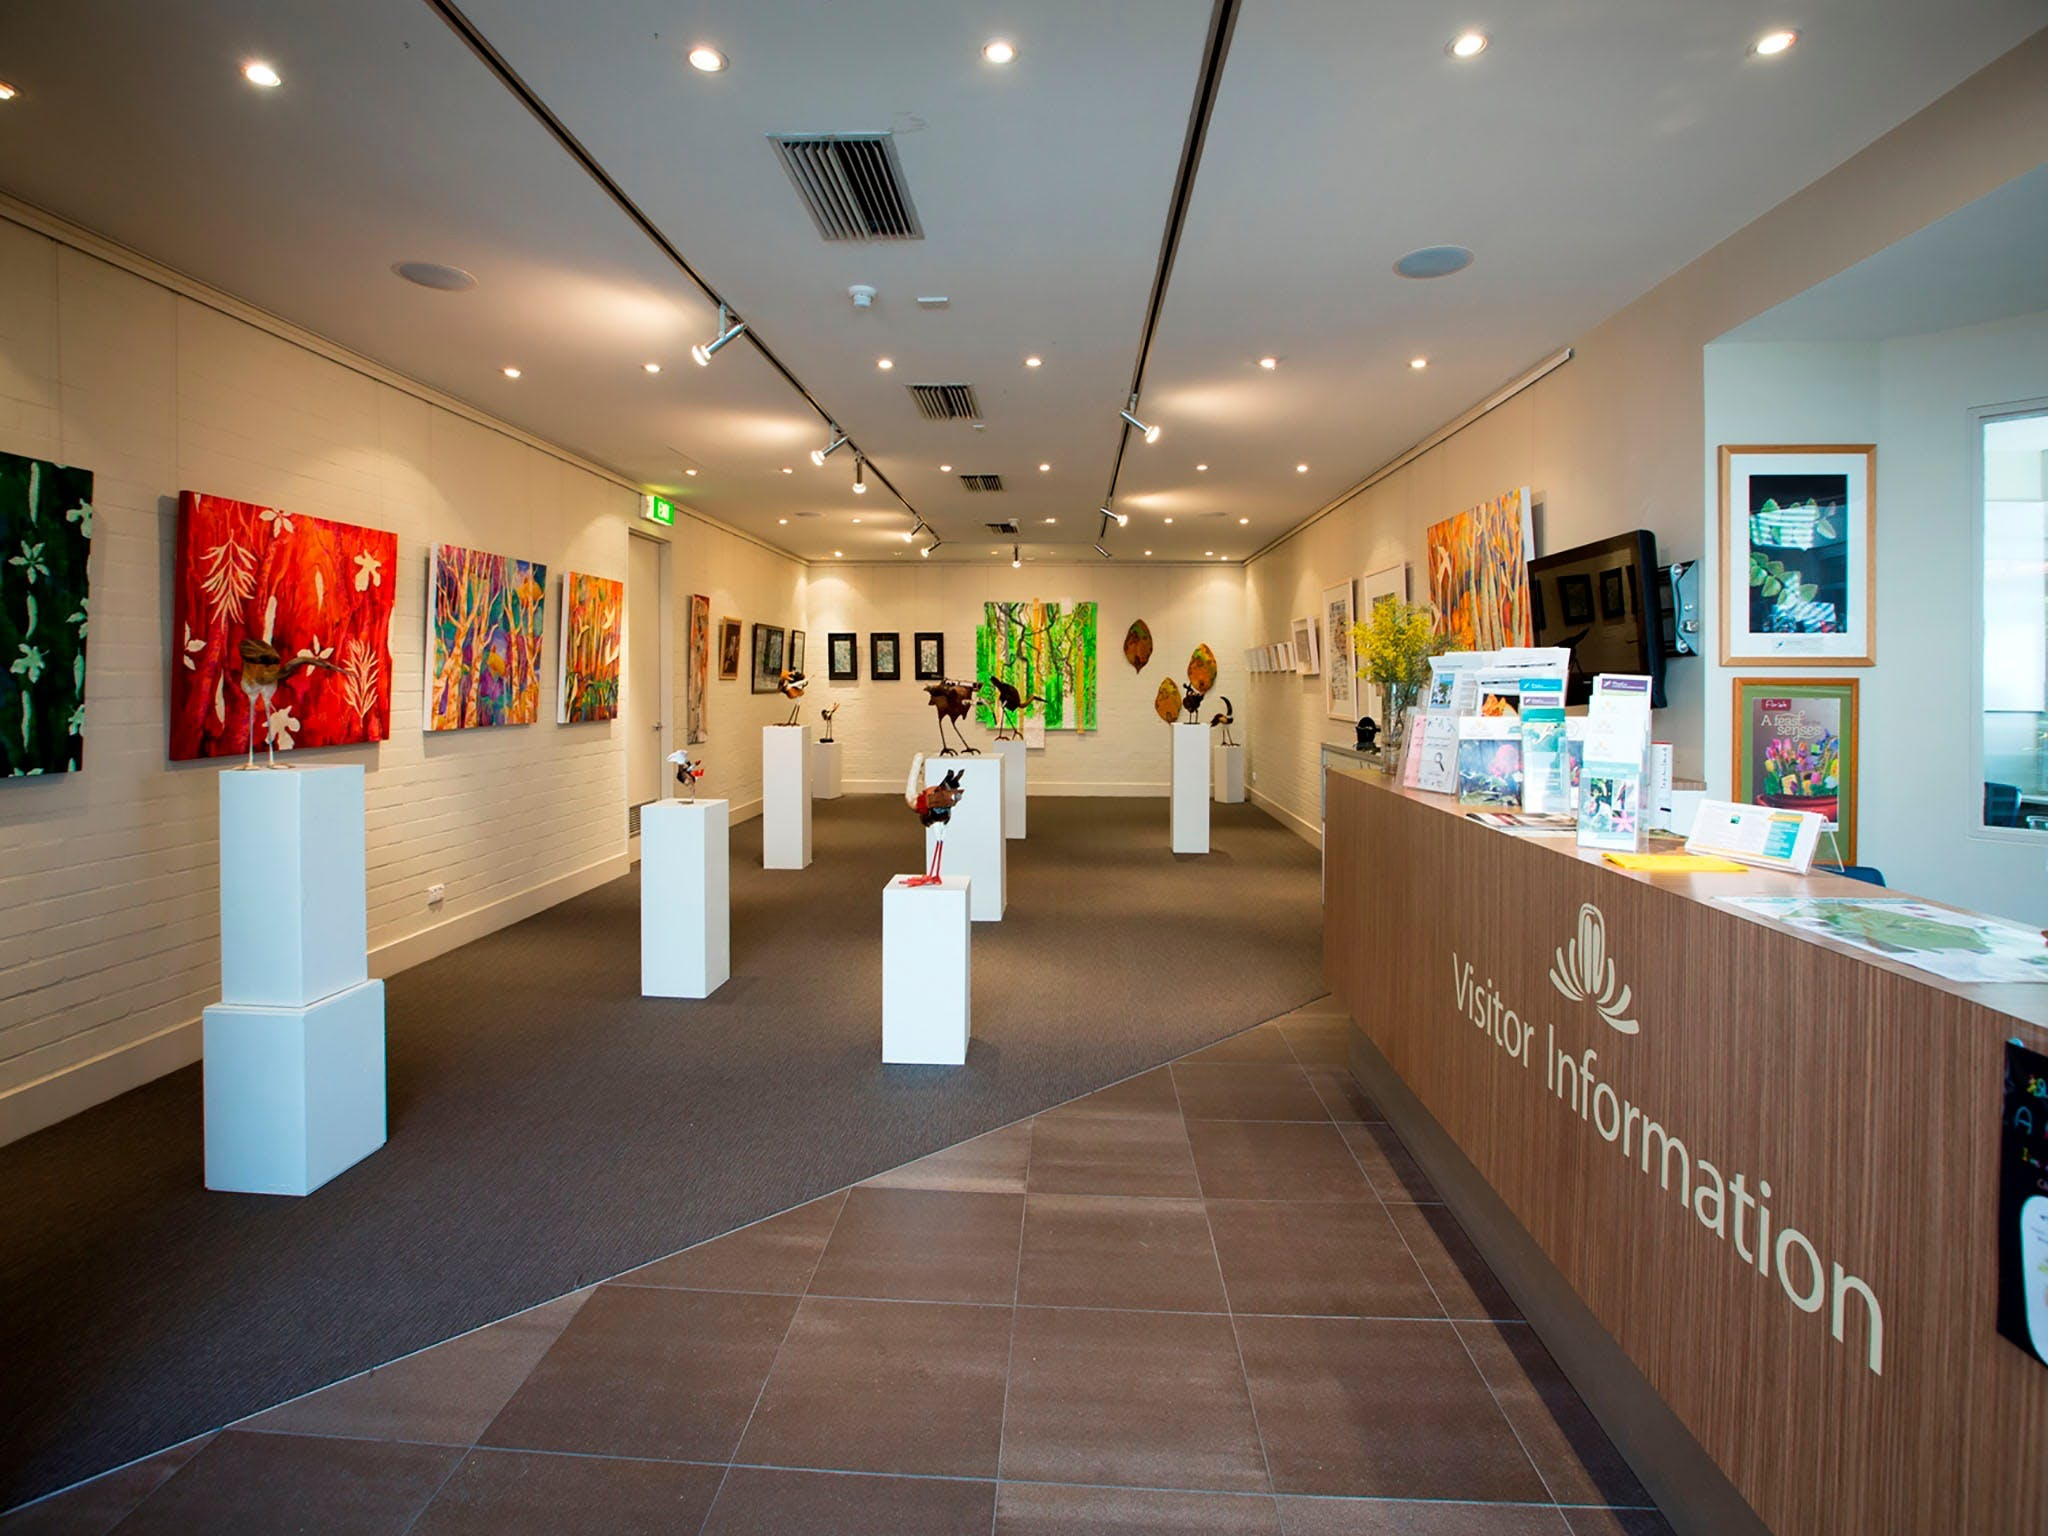 Australian National Botanic Gardens Visitor Centre Gallery - Tourism Cairns